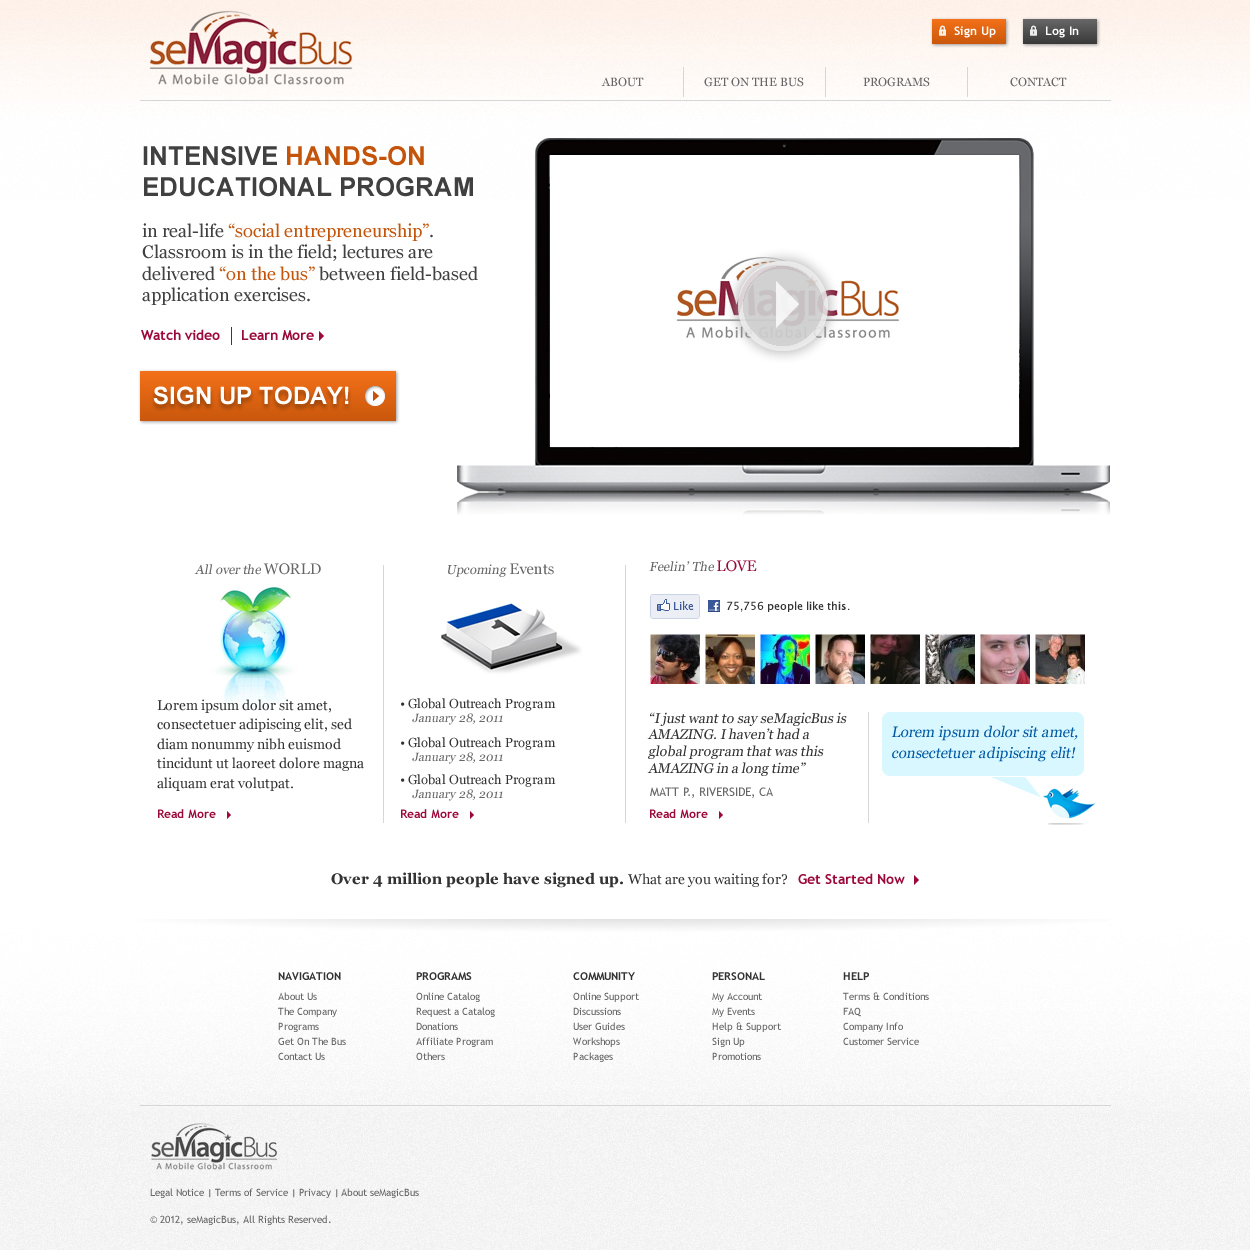 Web Page Design by johngabriel - Entry No. 16 in the Web Page Design Contest seMagicBus Website.